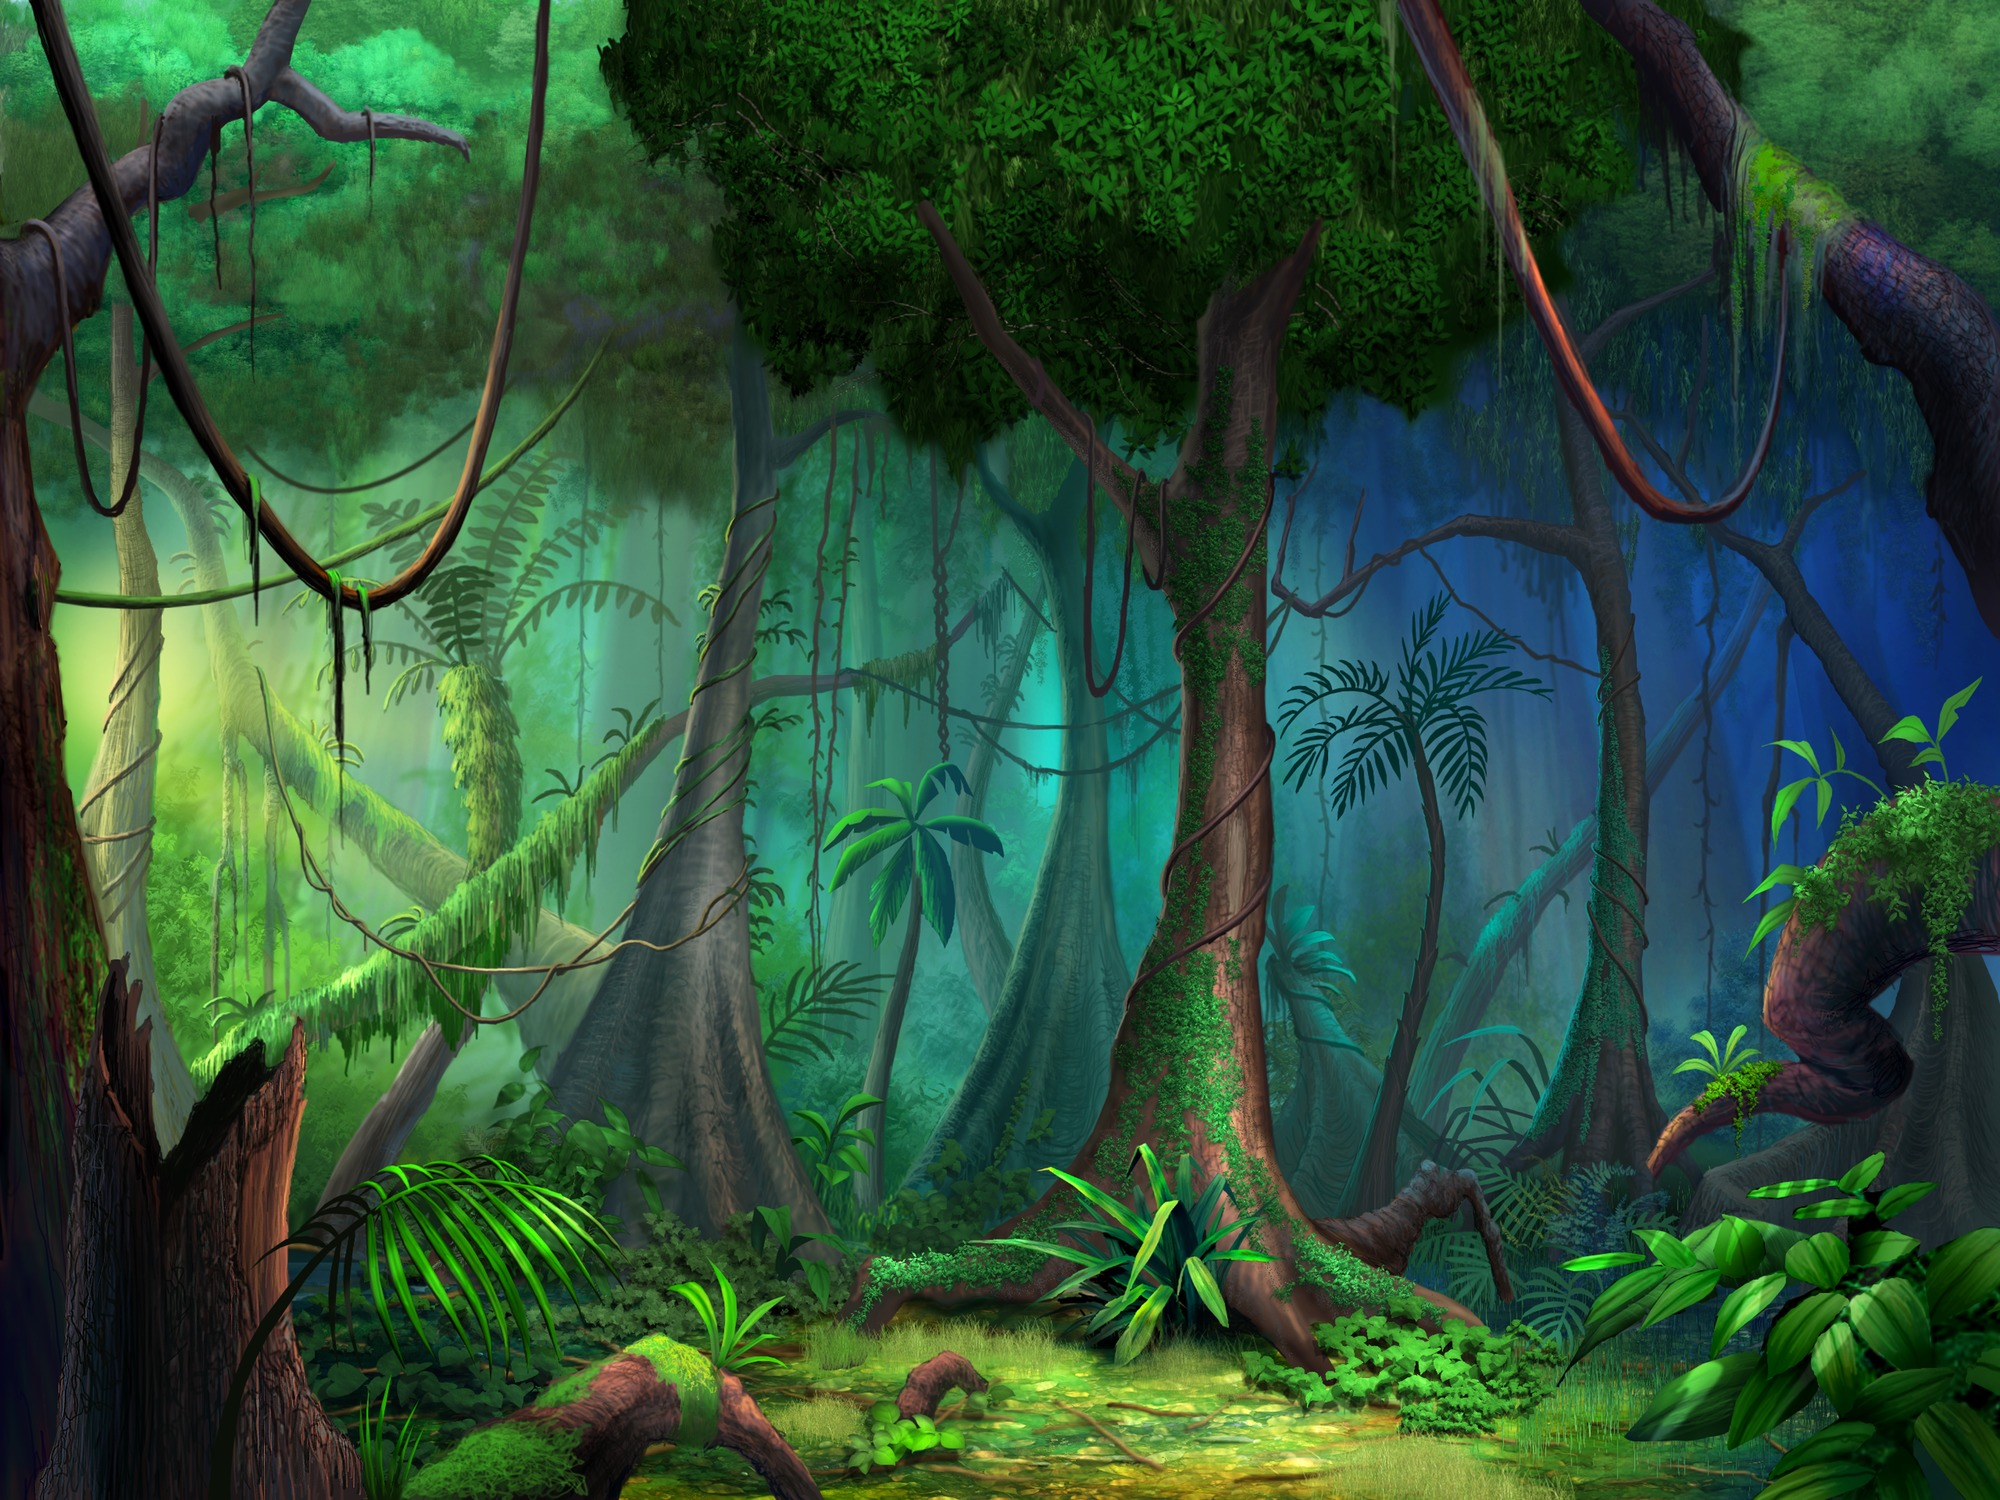 rainforest wall mural images rainforest wall mural creative art expressions